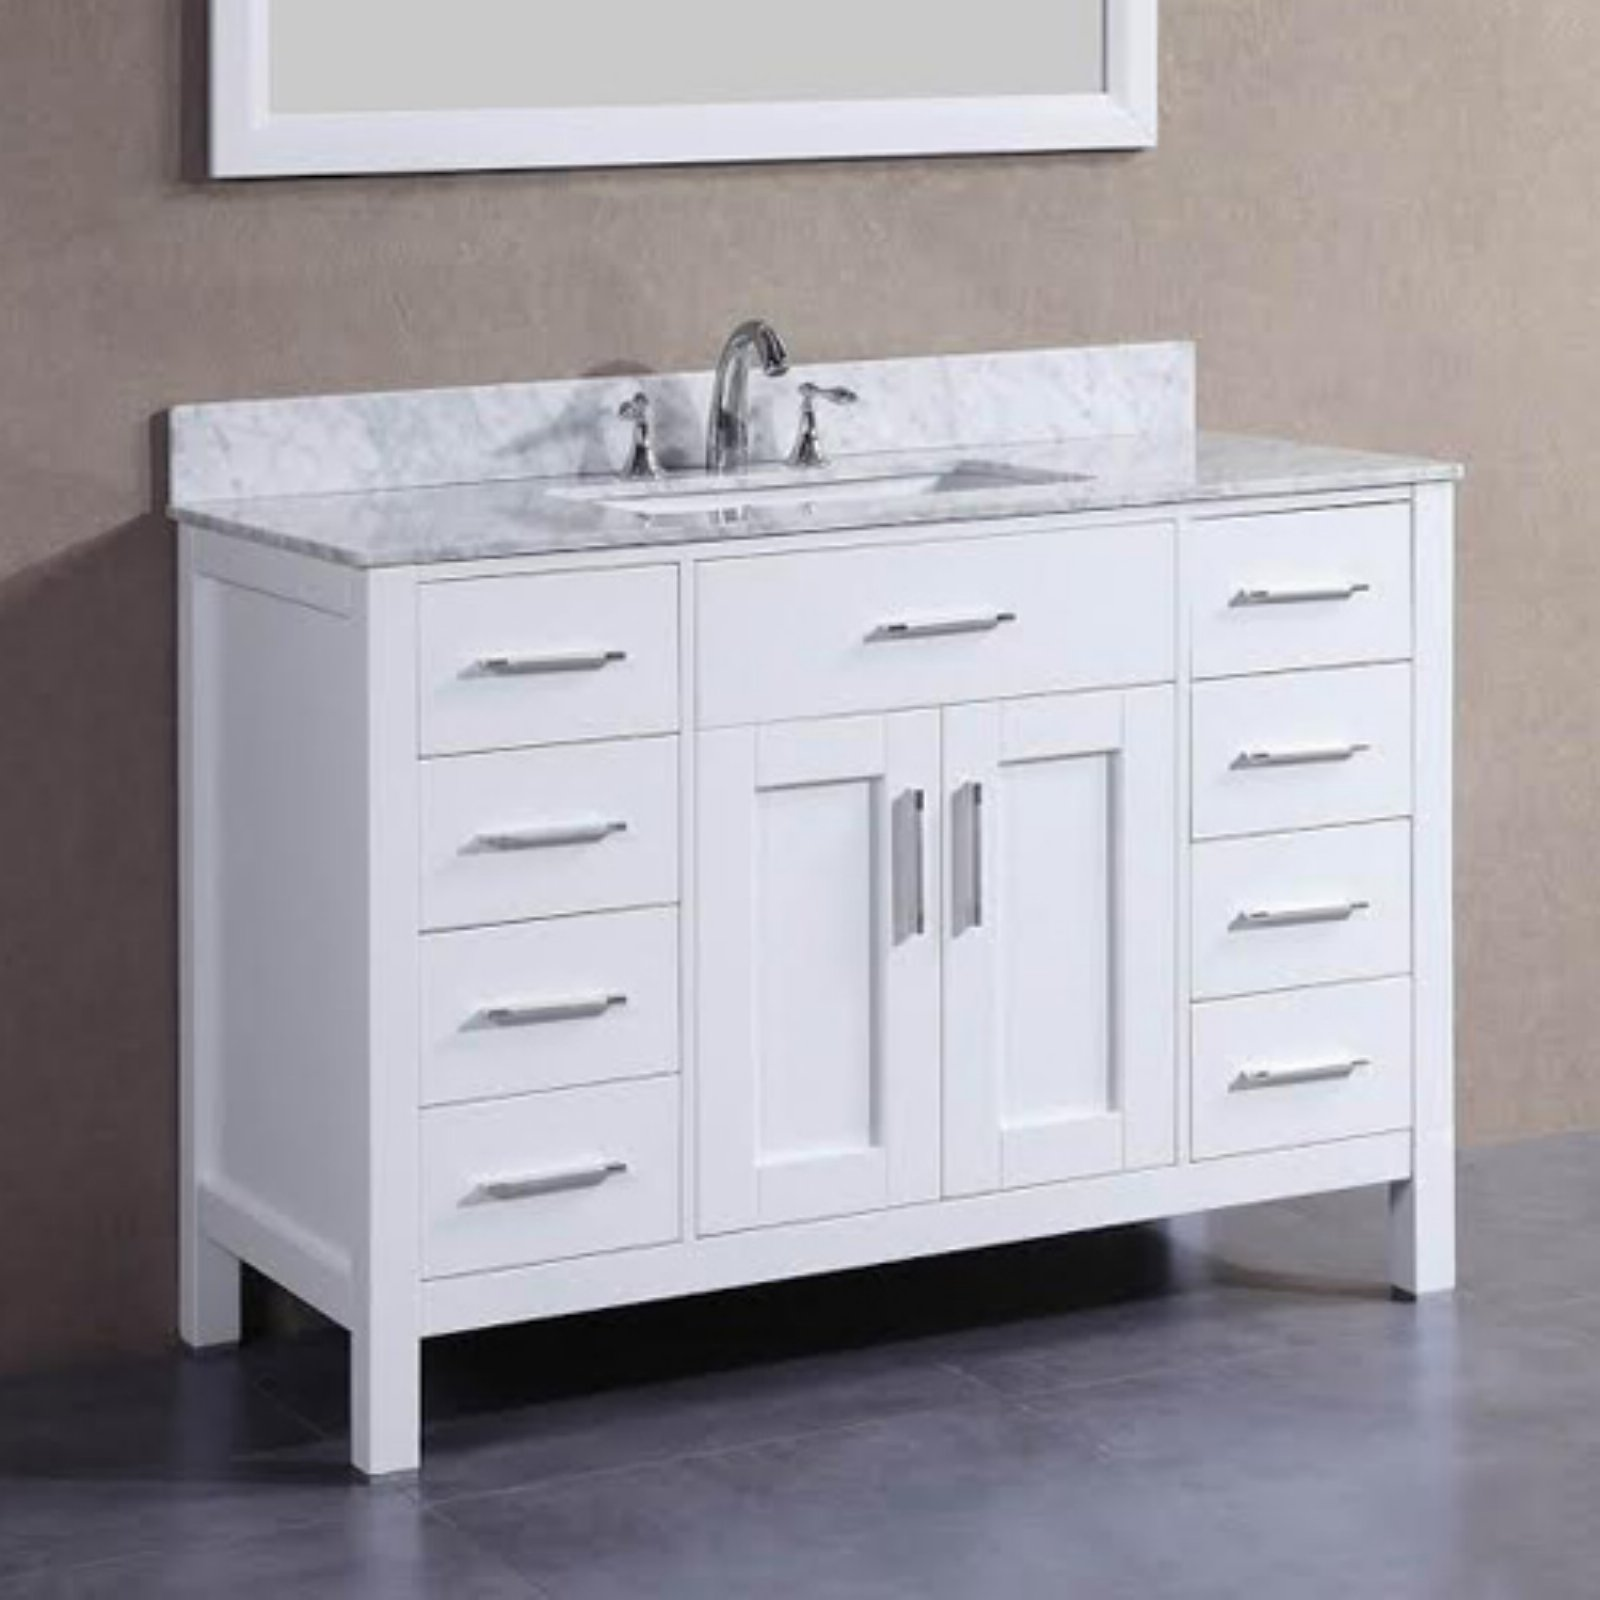 Belvedere 48 in. Freestanding Single Bathroom Vanity with Marble Top by Belvedere Bath LLC